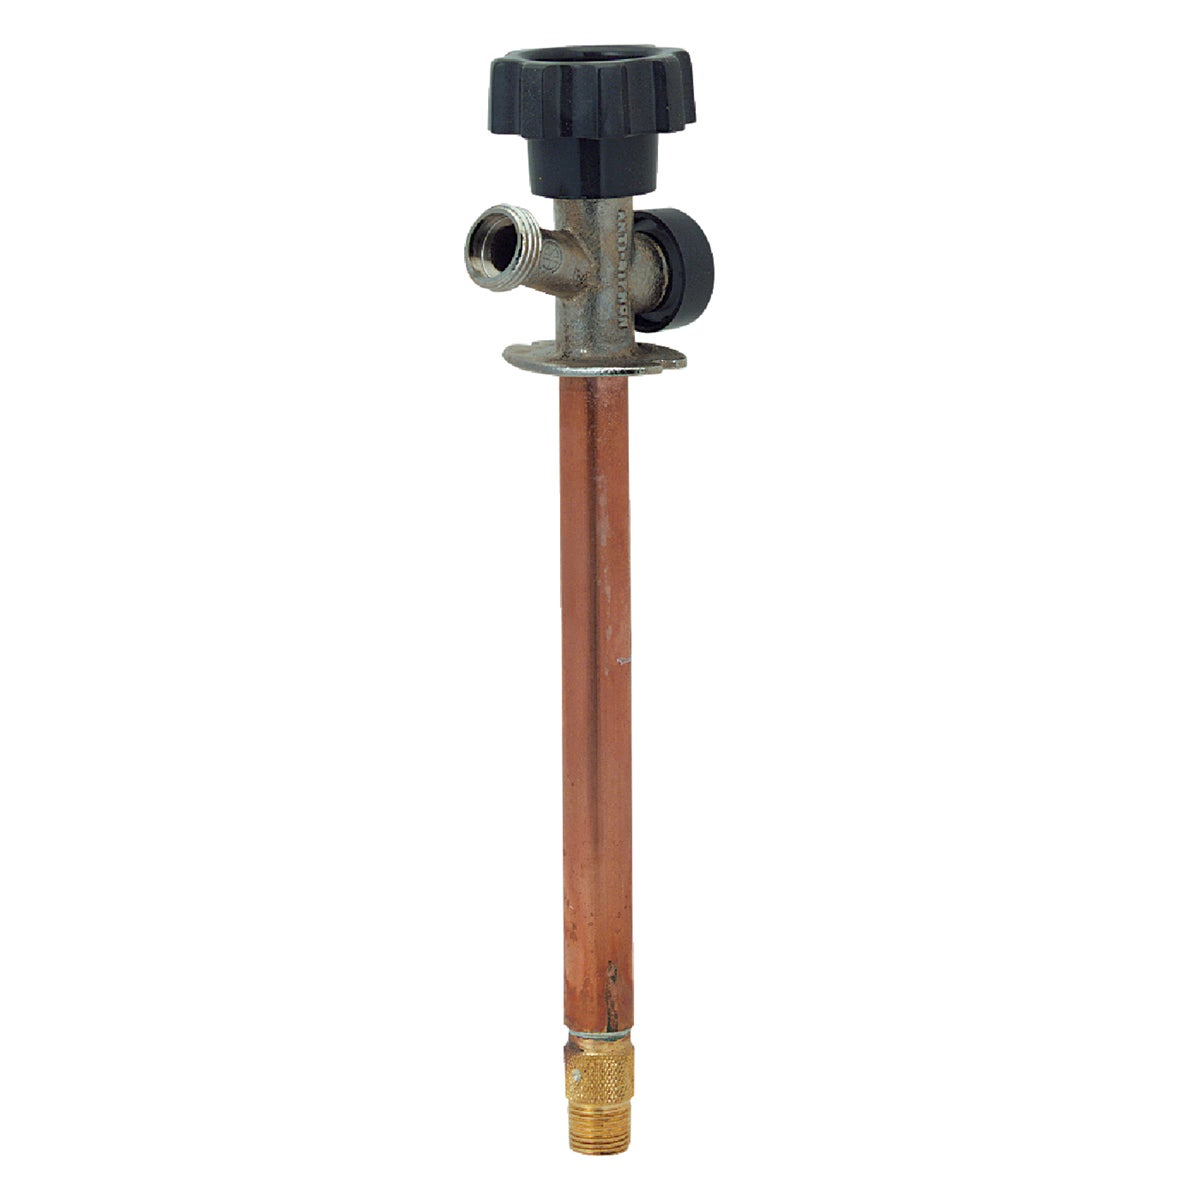 Prier 1/2 In. SWT X 1/2 In. IPS Anti-Siphon Frost Free Wall Hydrant, 478-08